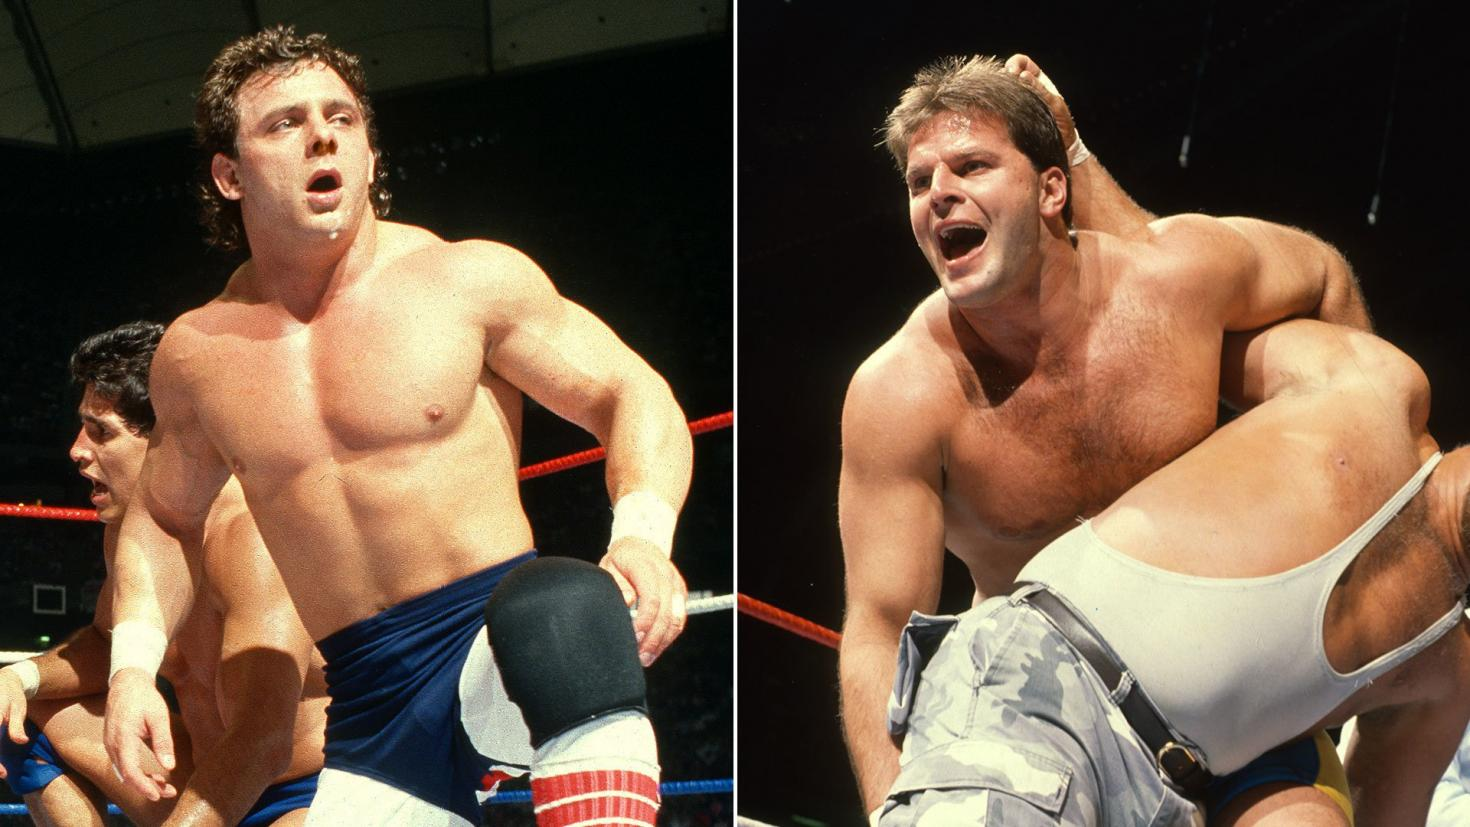 Dynamite Kid of the British Bulldogs and Jacques Rougeau of the Fabulous Rougeaus had a feud that went well beyond the ring.